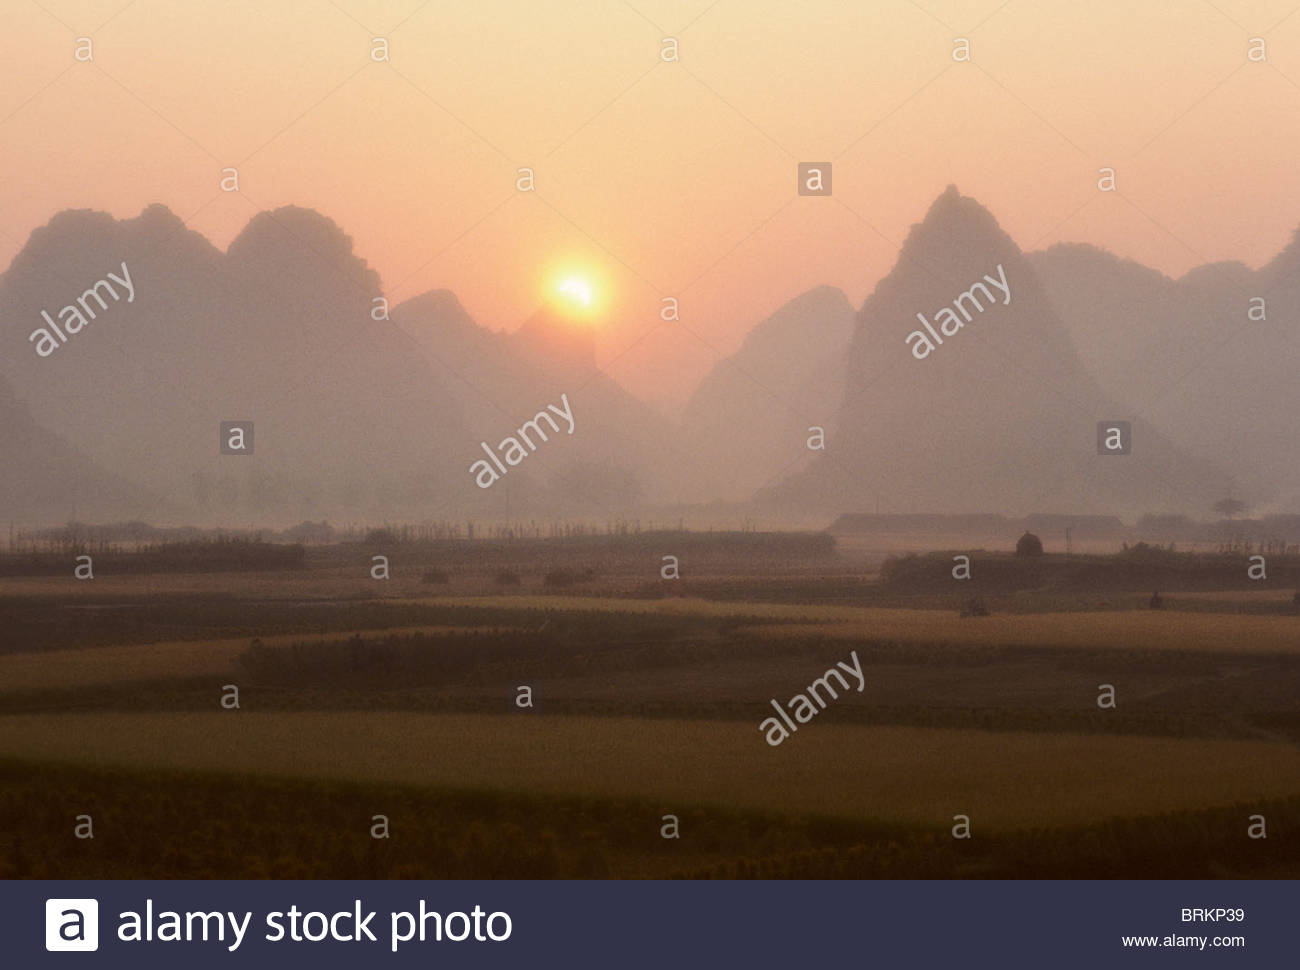 Sunrise, on ripe Rice fields in Guangxi province, southern china. Stock Photo